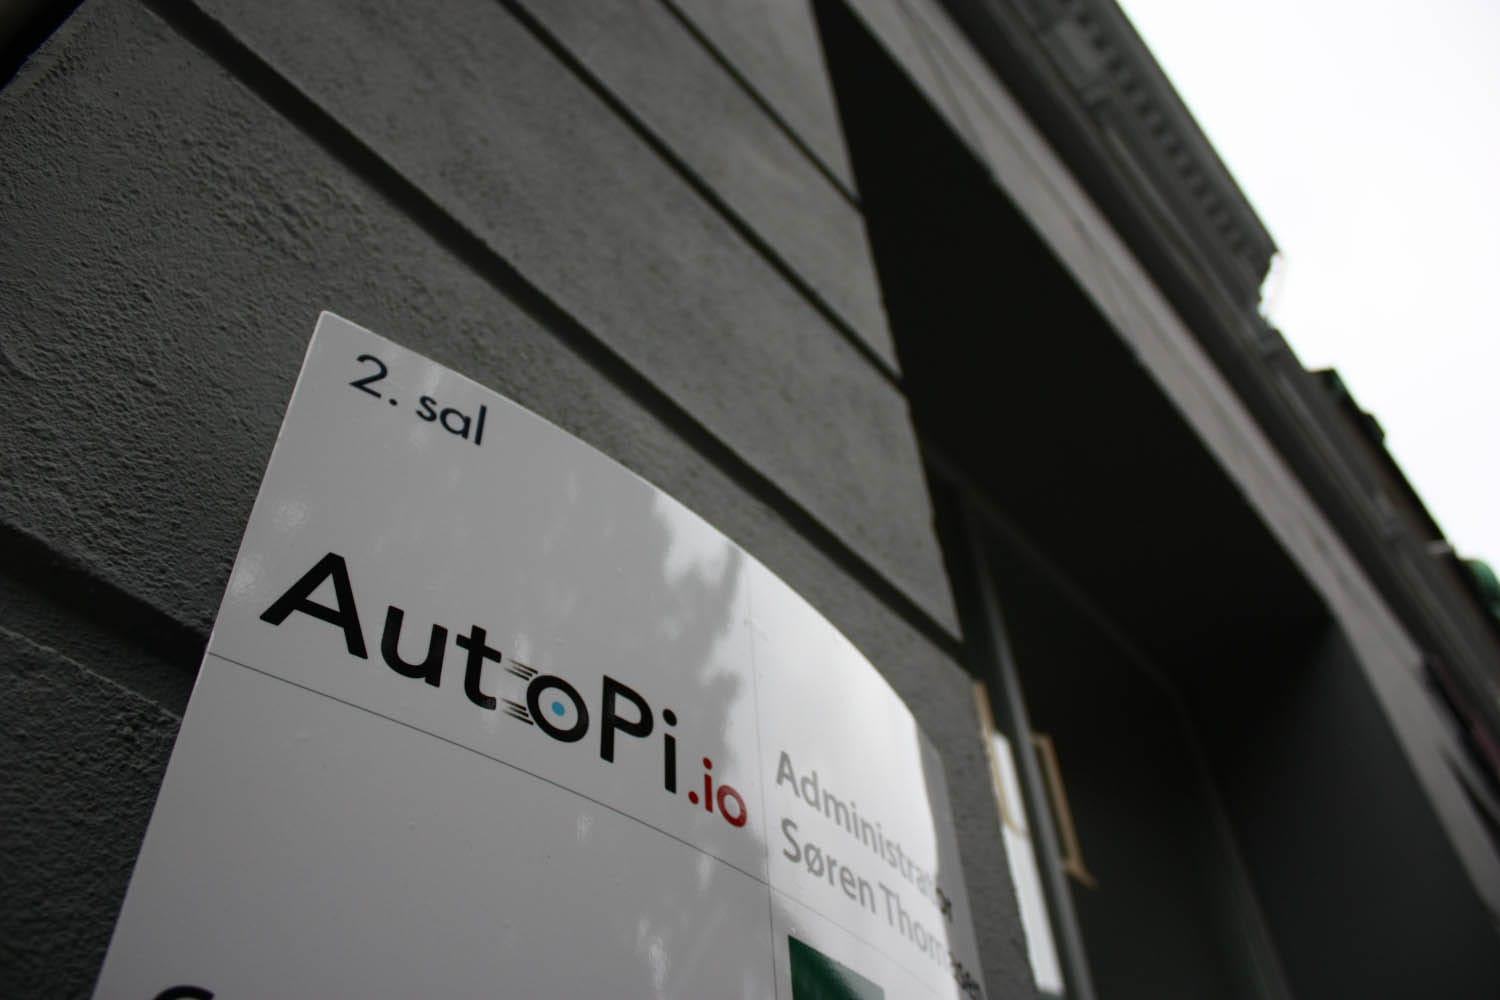 AutoPi.io office entrance